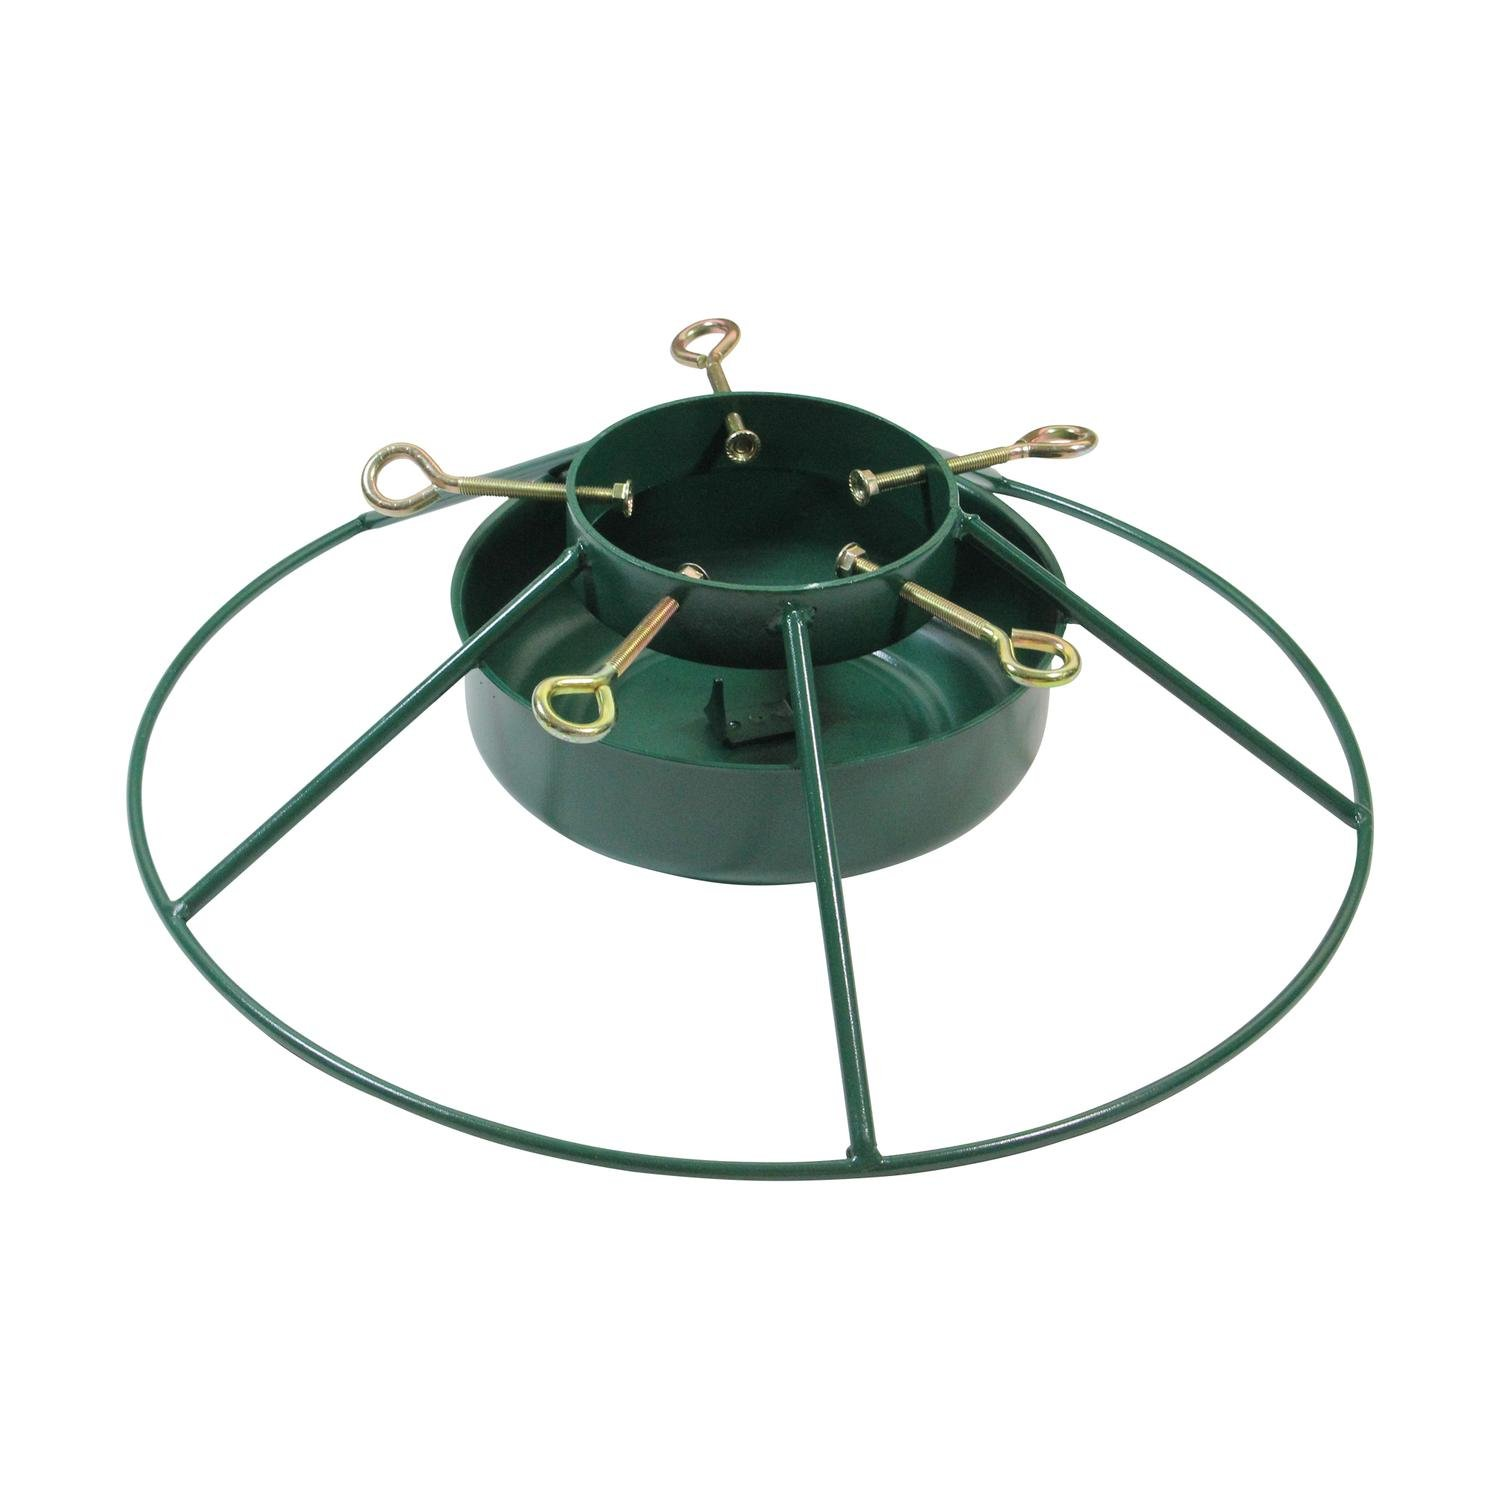 Heavy Duty Iron Mountain Christmas Tree Stand - For Real Live Trees Up To 12' Tall by Jack Post